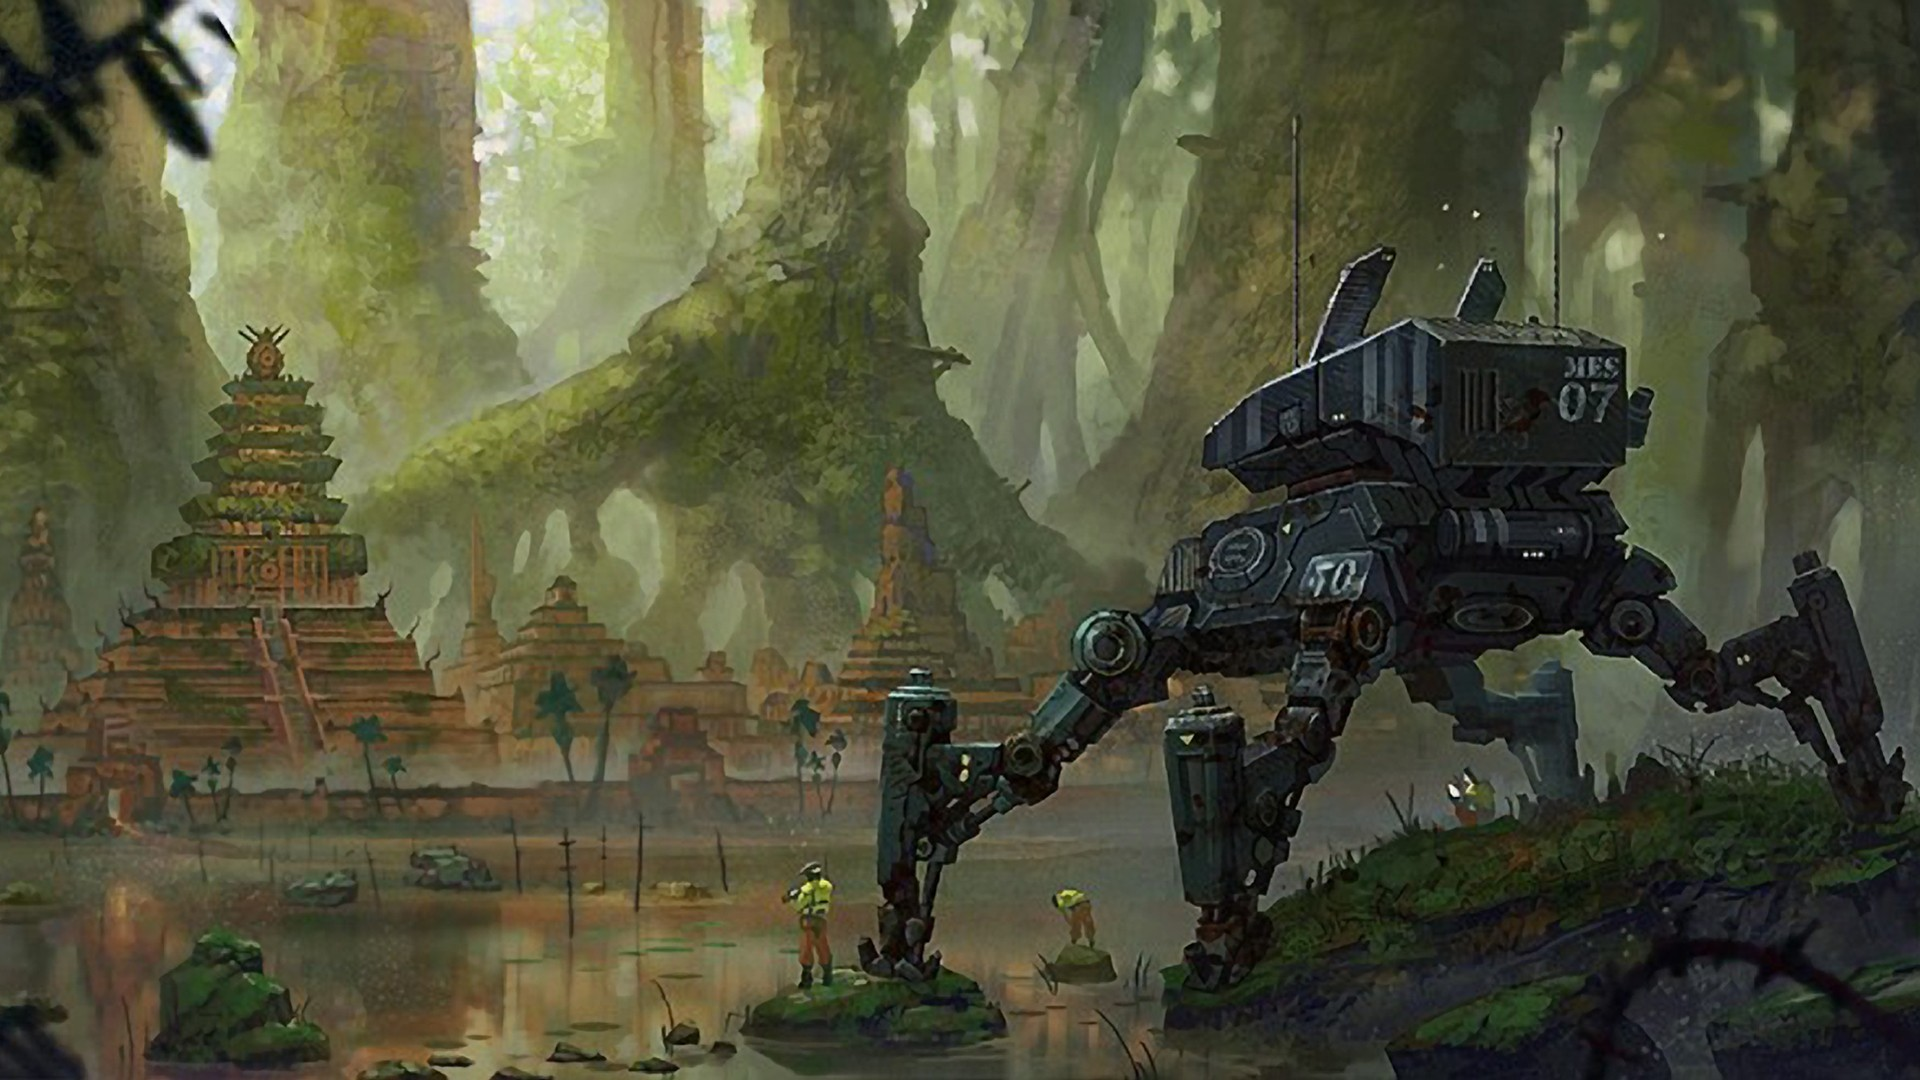 Trees ruins Robots futuristic HD Wallpaper